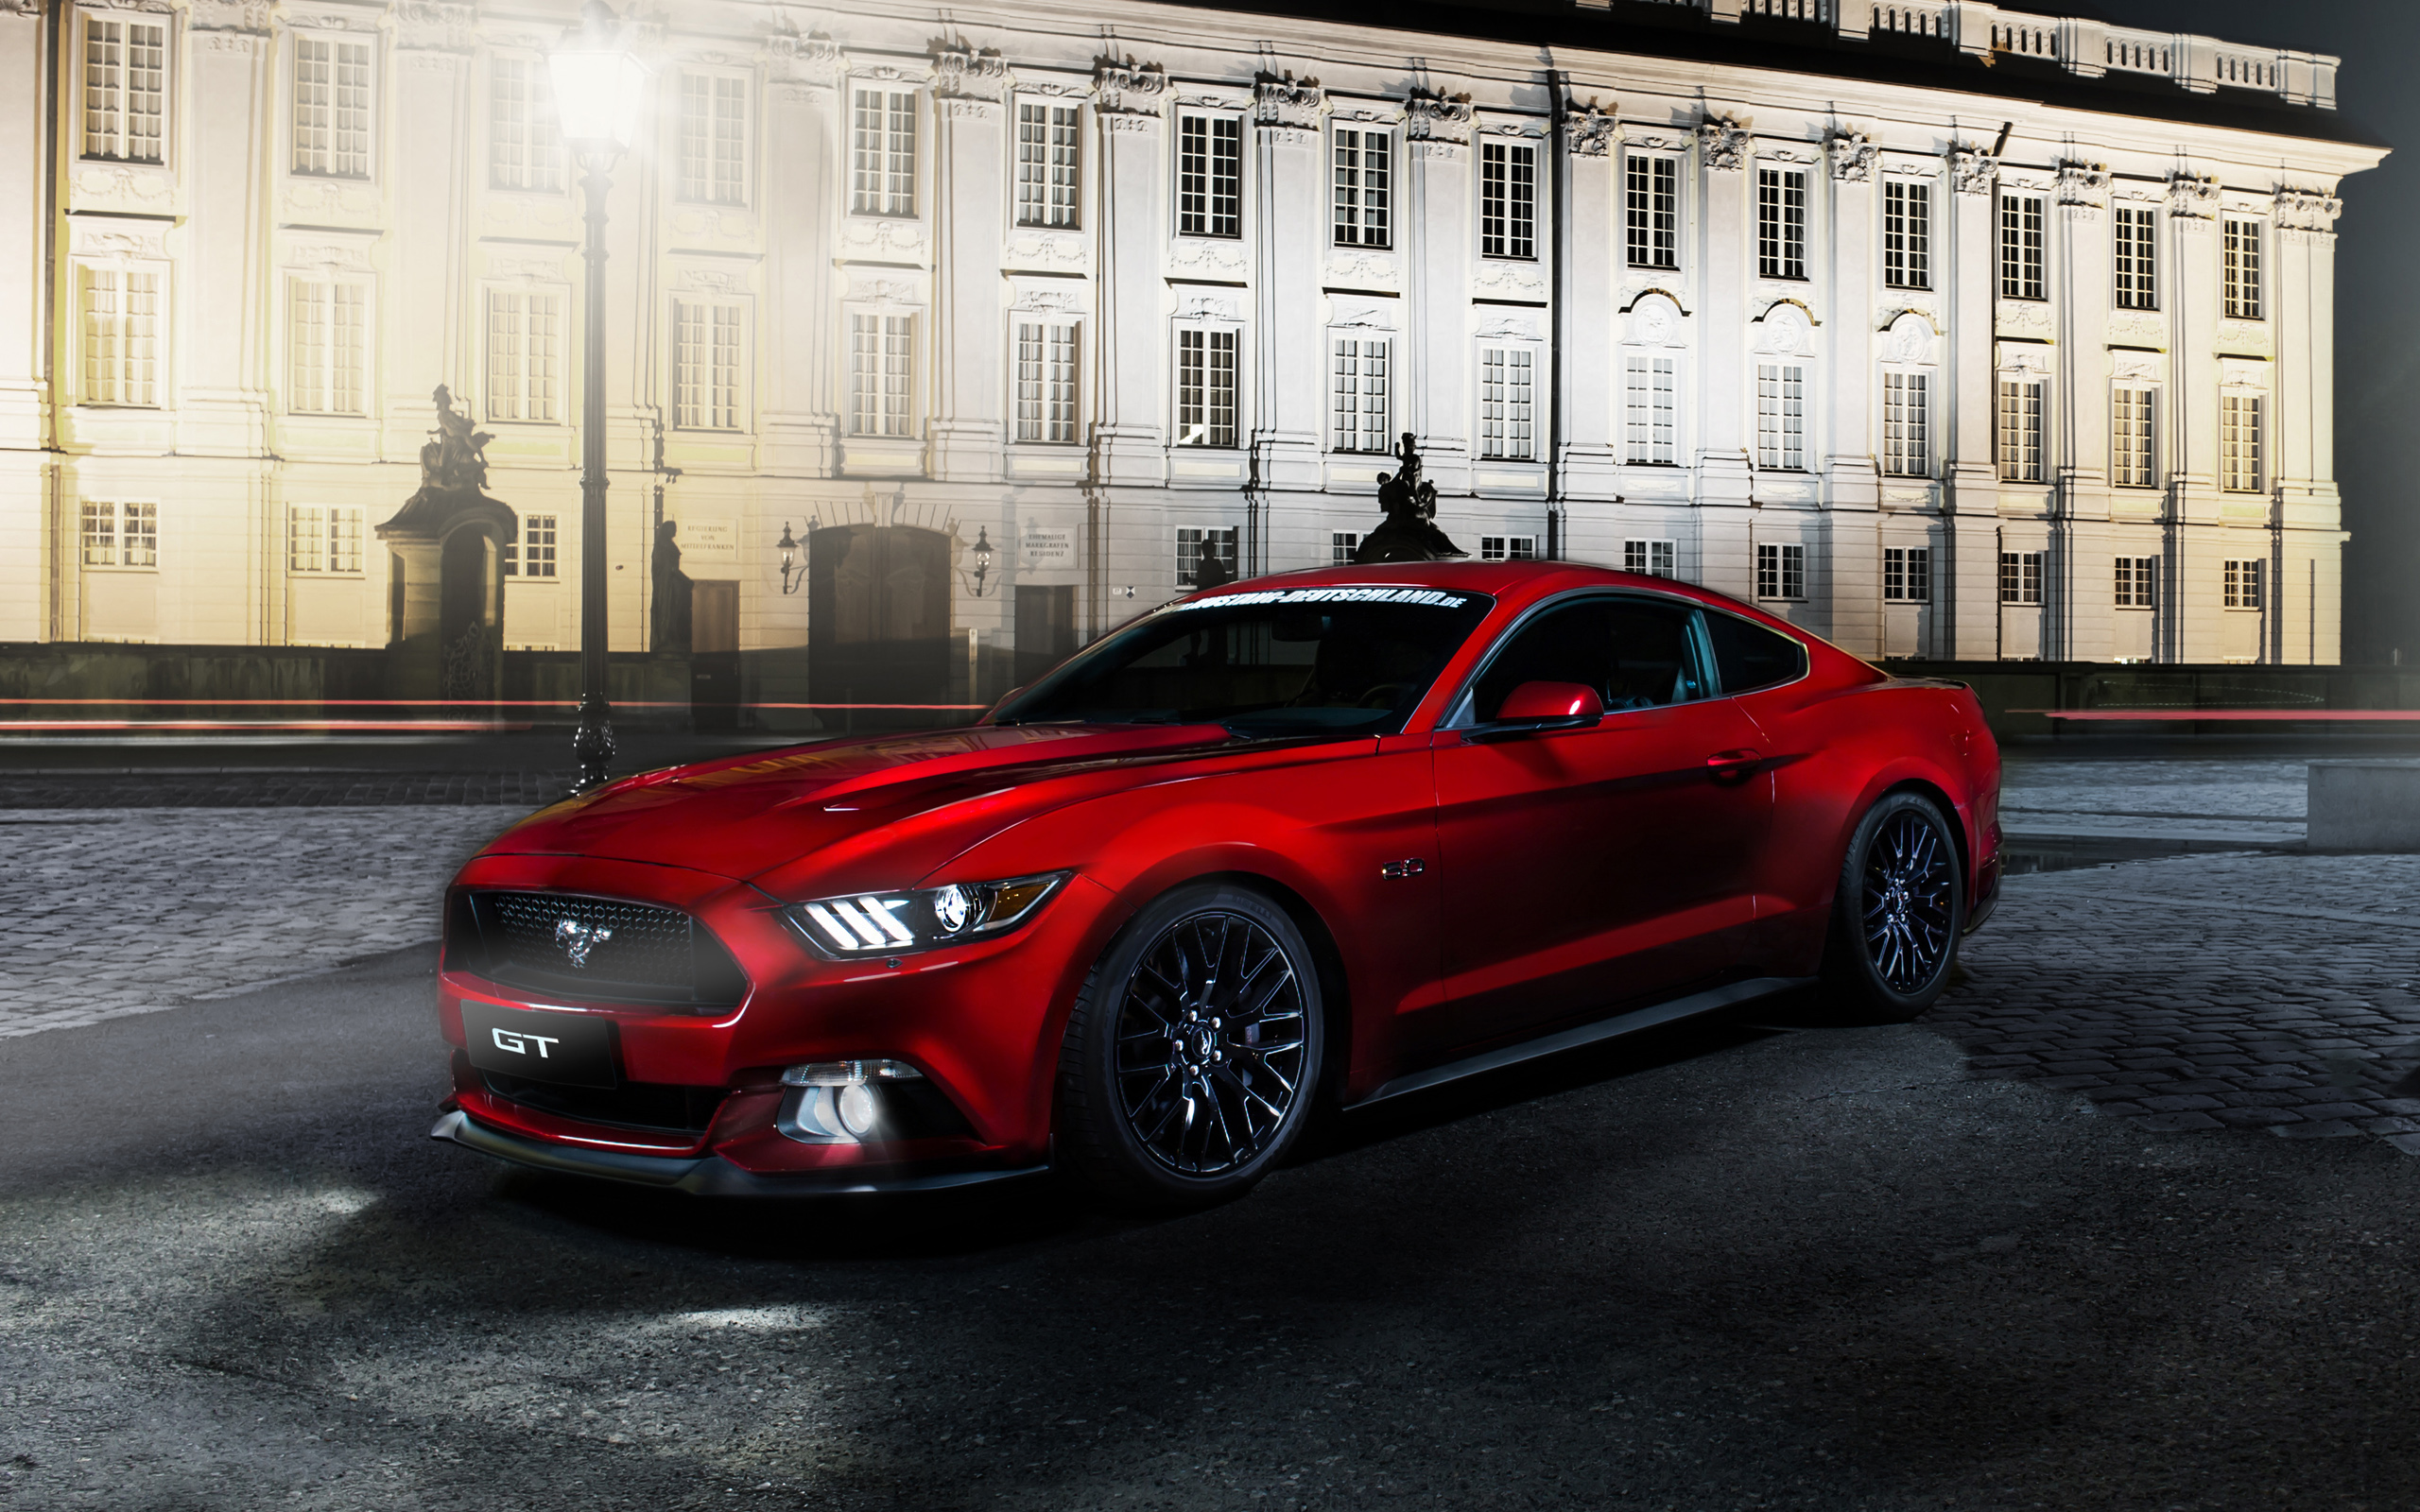 2016 Ford Mustang Gt Wallpapers High Quality Ford Mustang